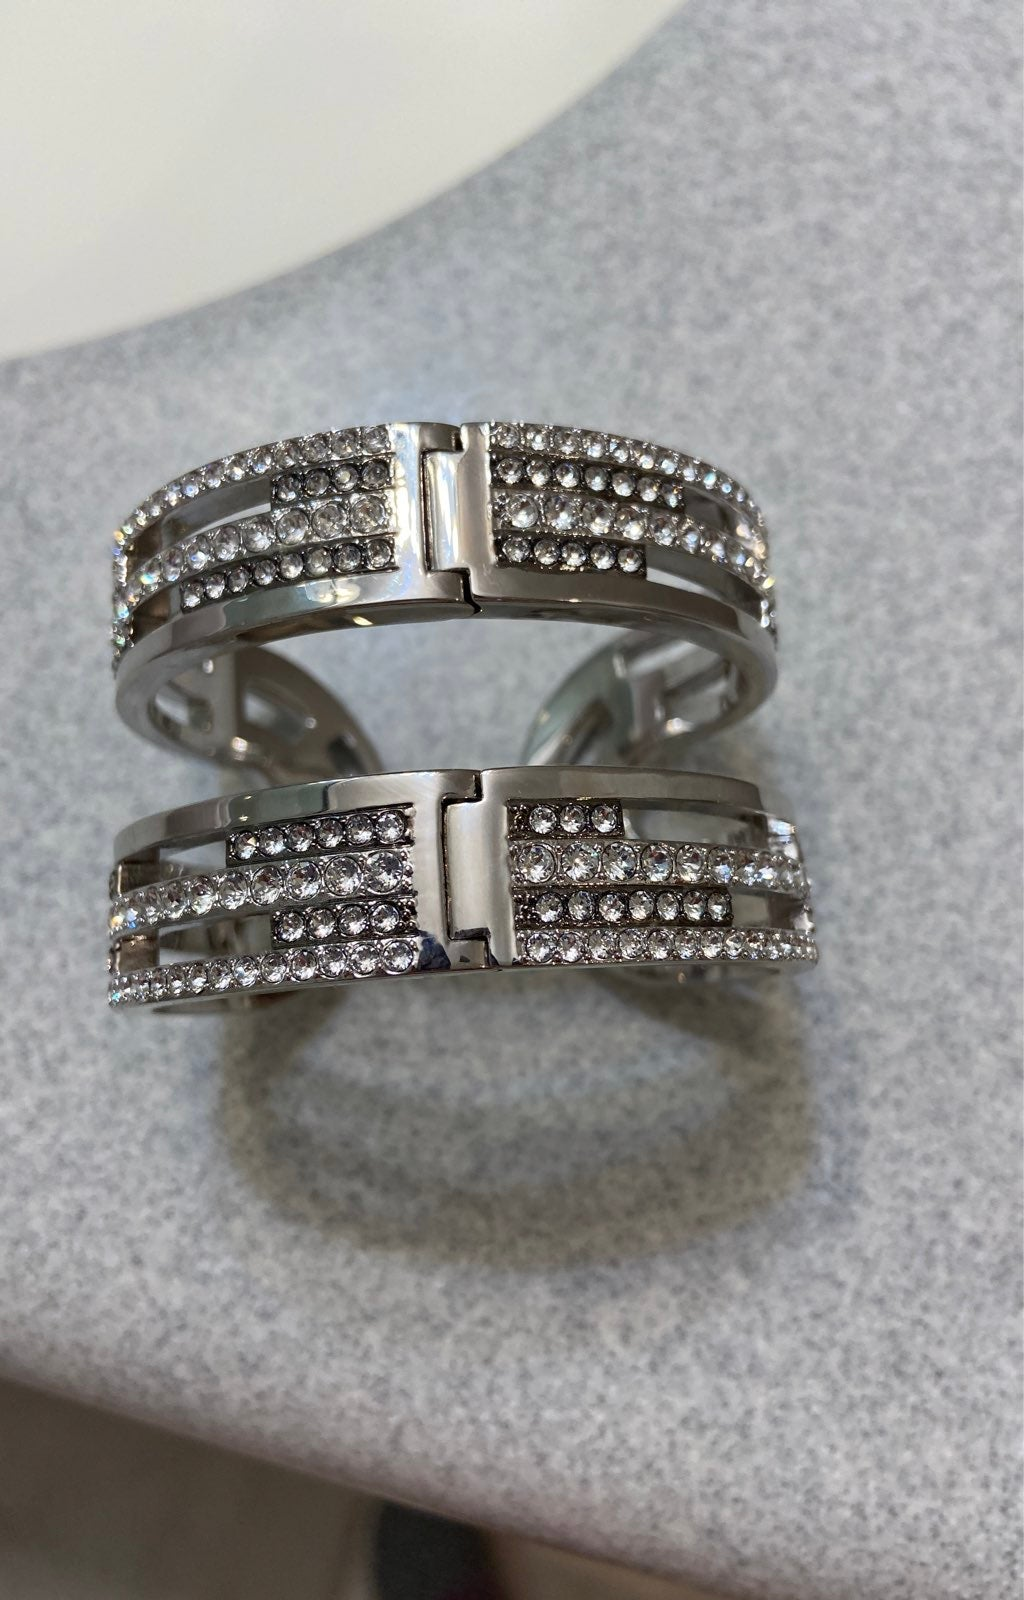 Karl Lagerfeld silver rhinestone bangle